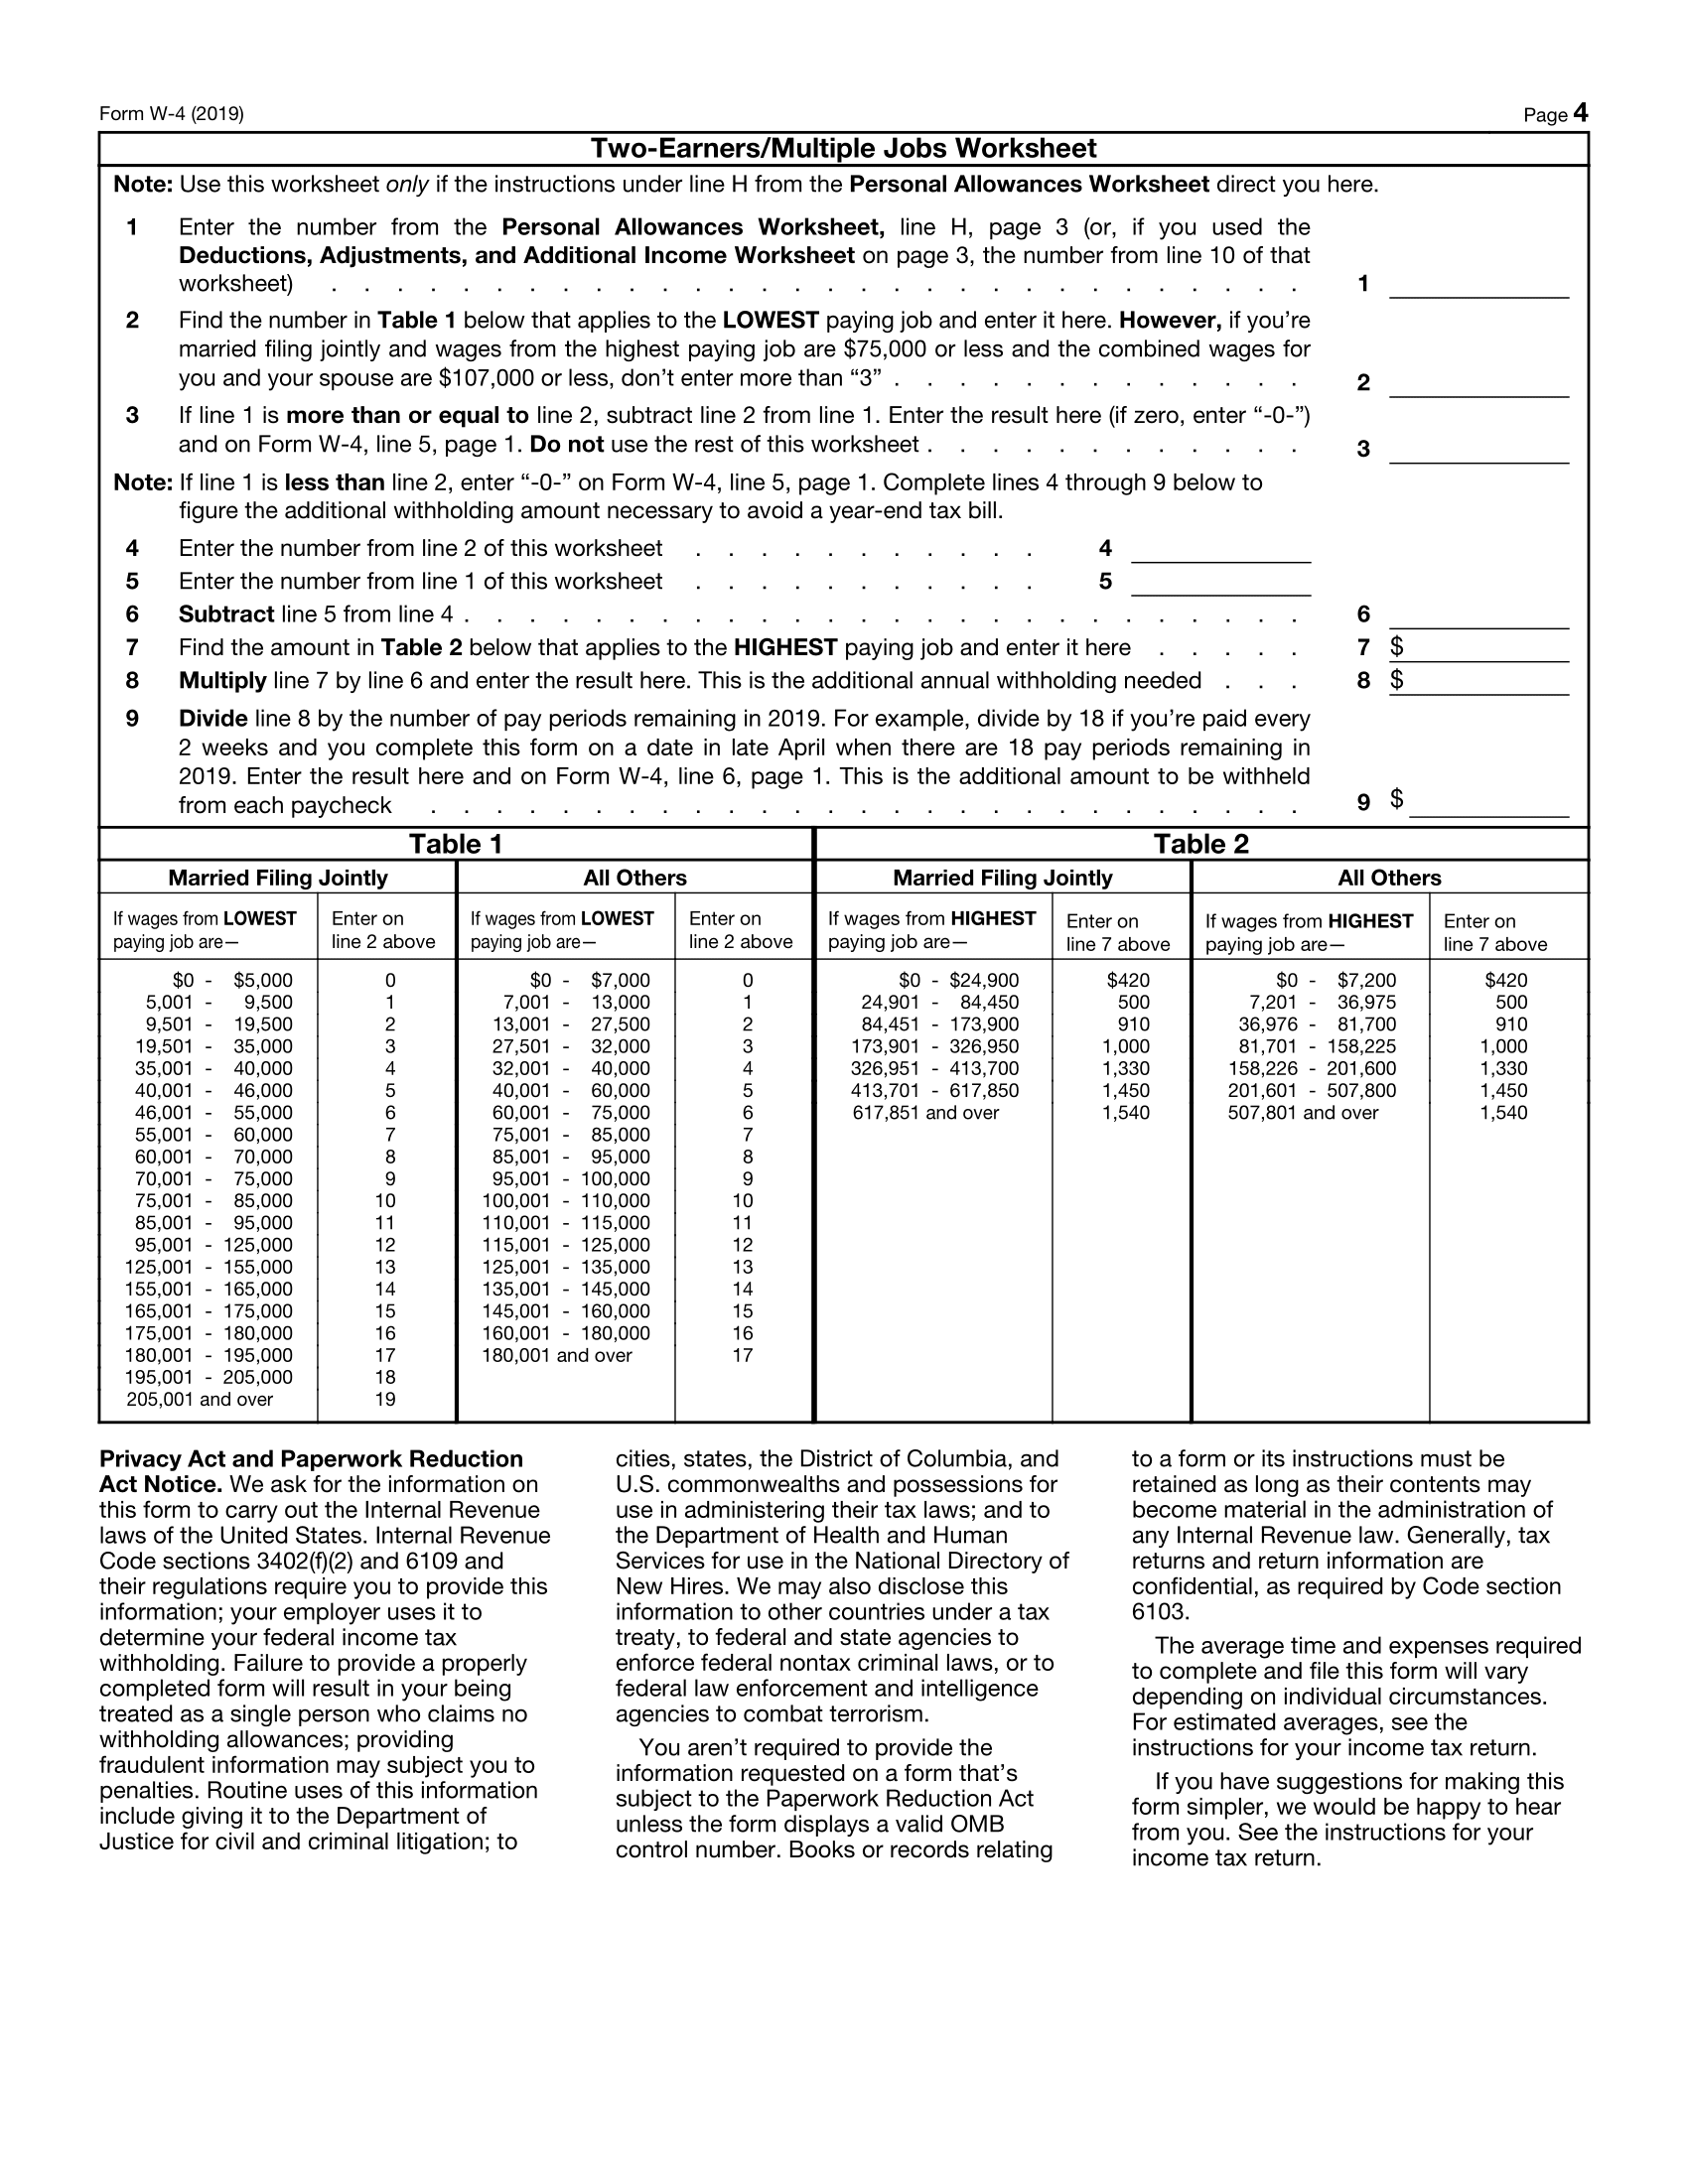 Form W-4 Page 4